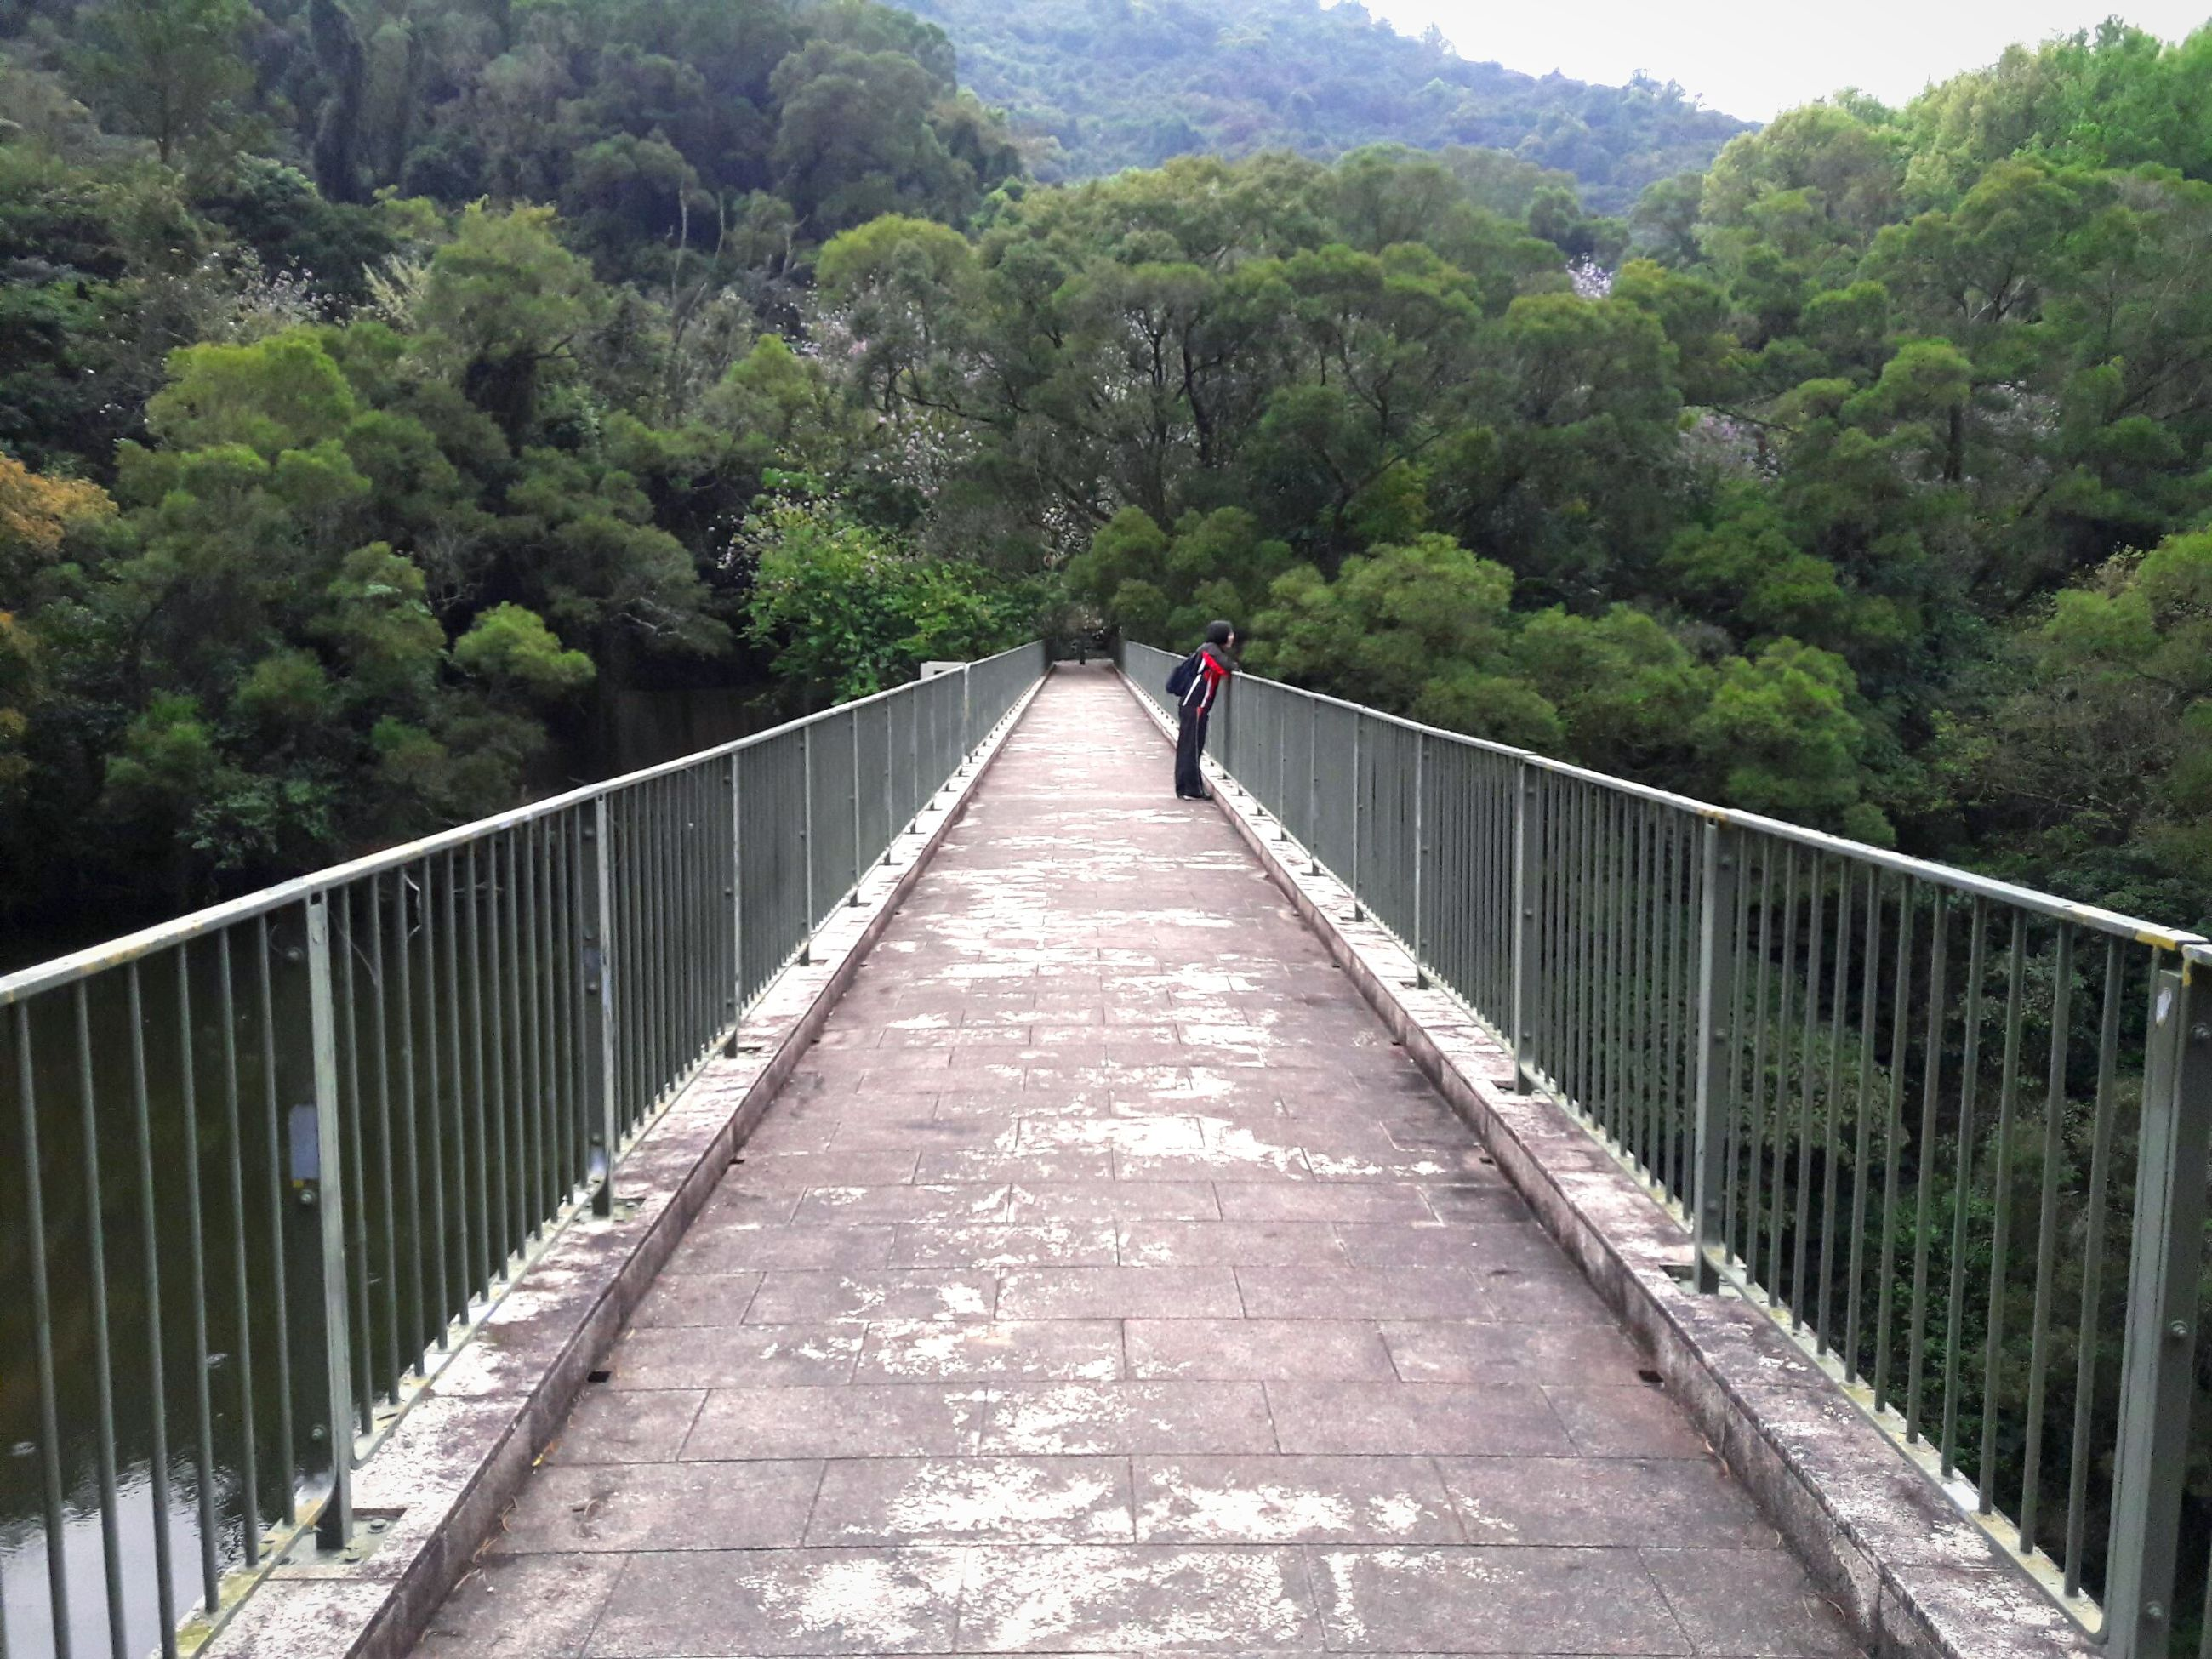 railing, tree, the way forward, nature, bridge - man made structure, outdoors, footbridge, day, real people, beauty in nature, mountain, growth, full length, one person, sky, people